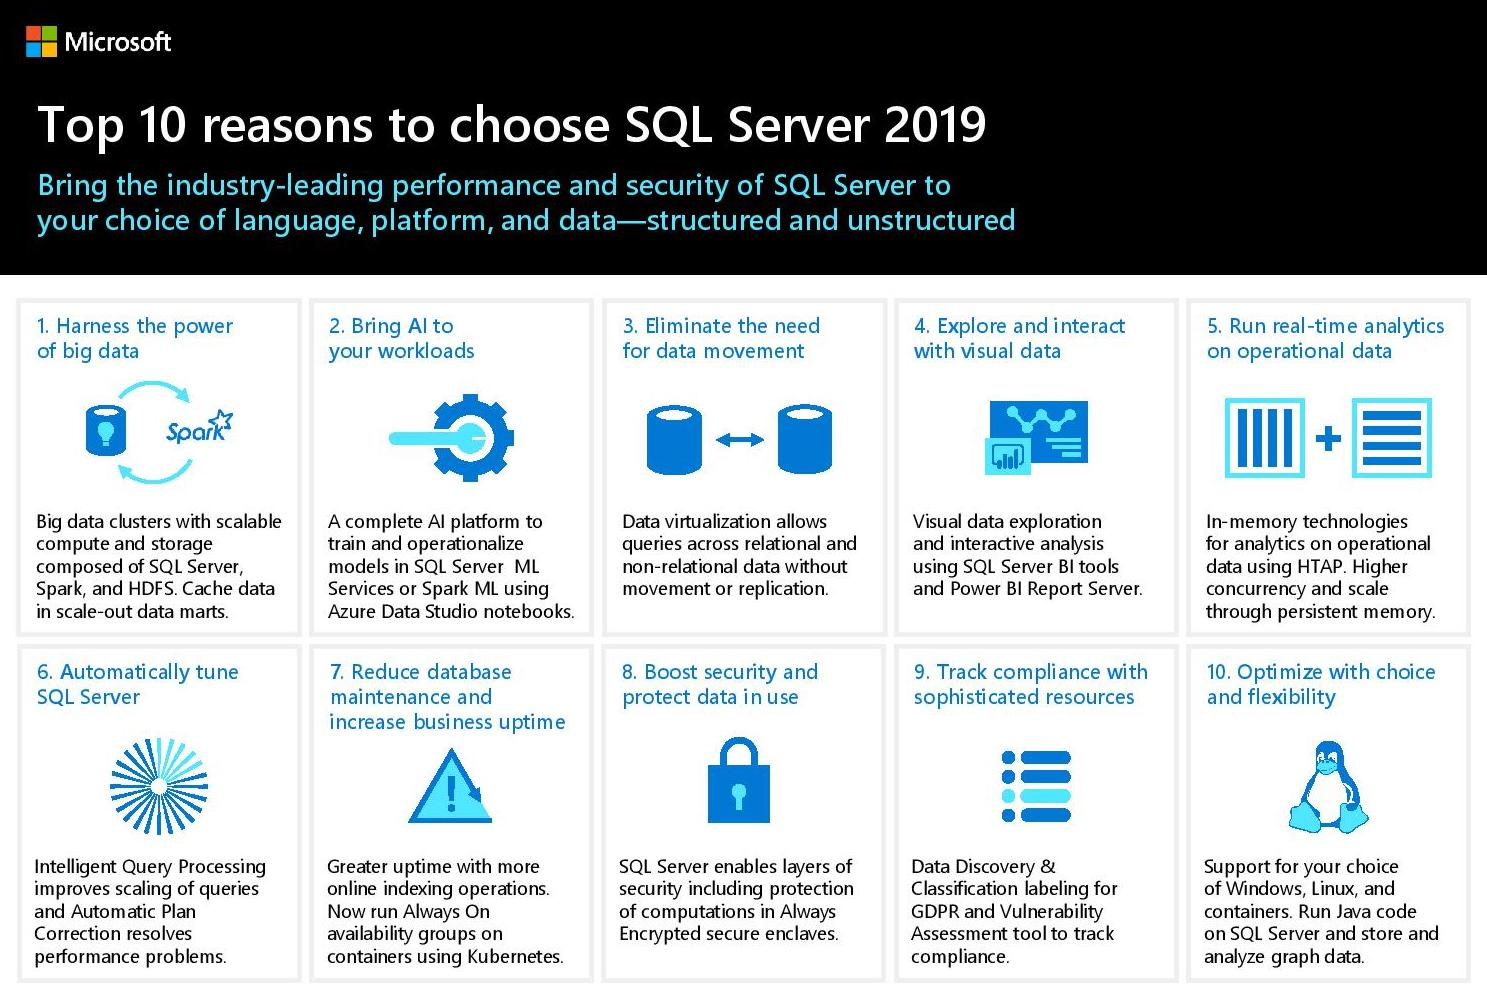 10 reasons to choose SQL Server 2019